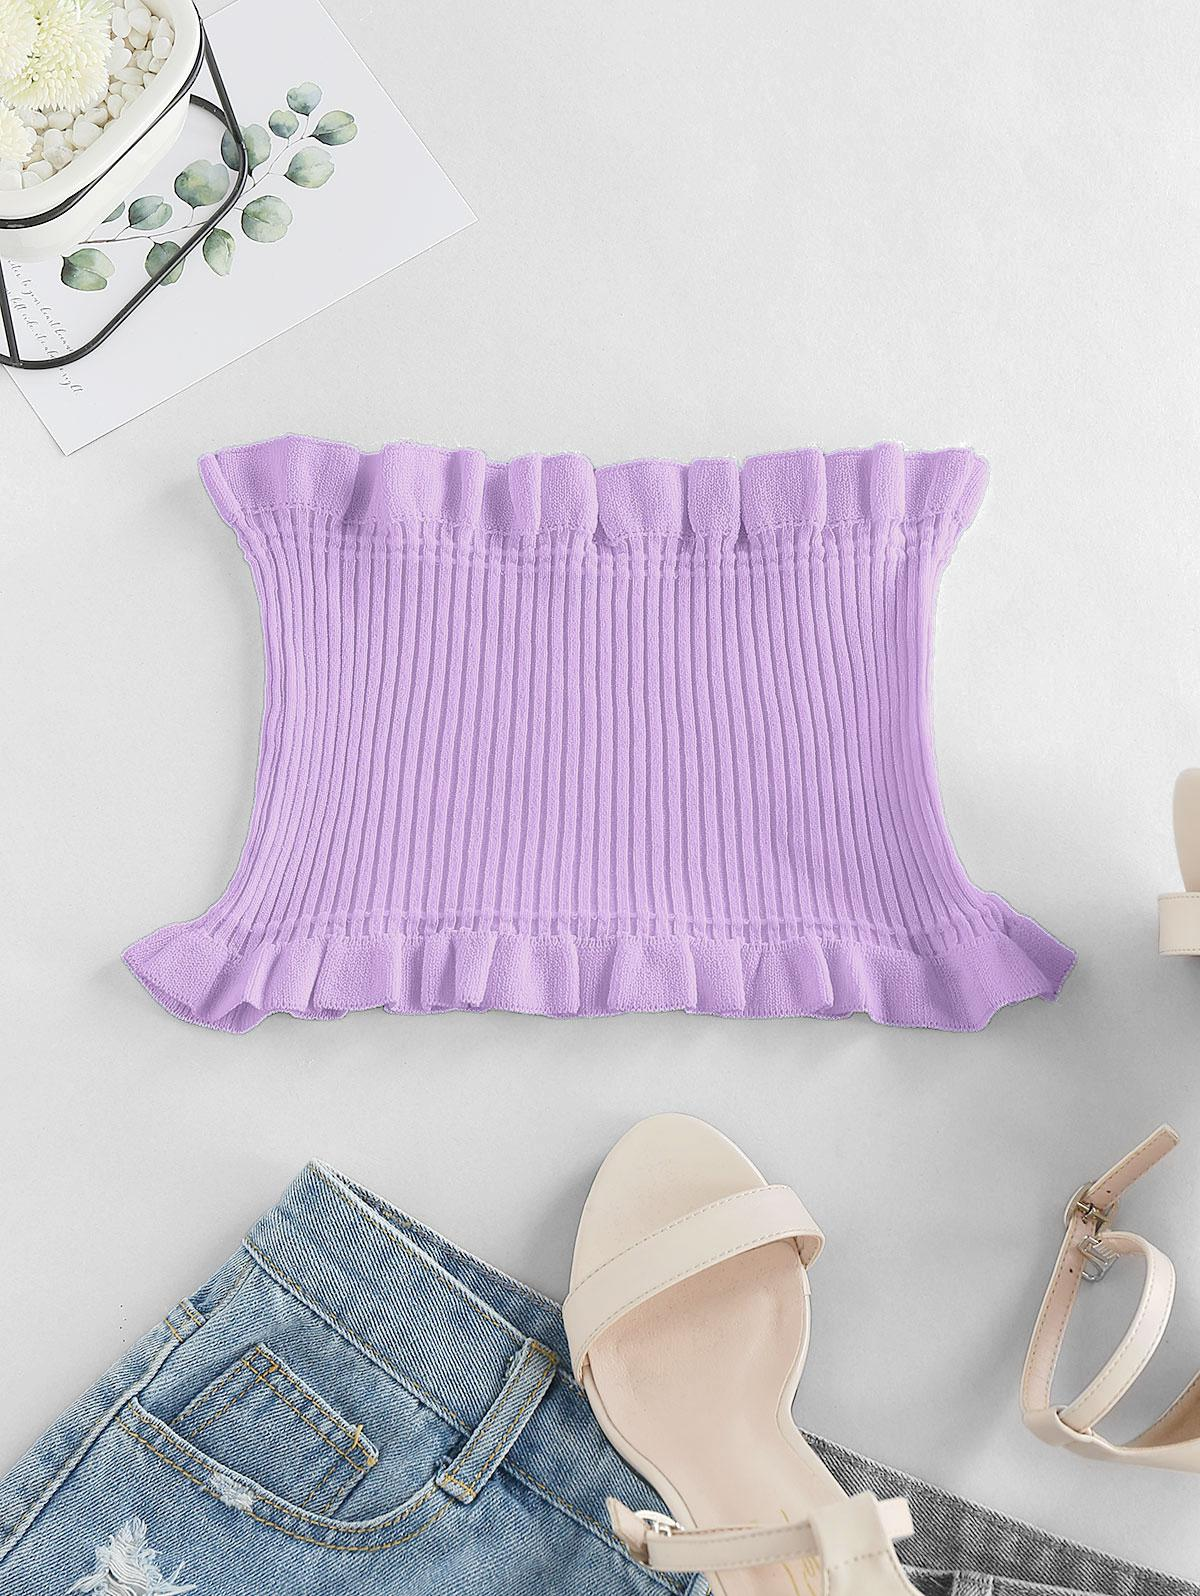 ZAFUL Strapless Ruffled Smocked Crop Top